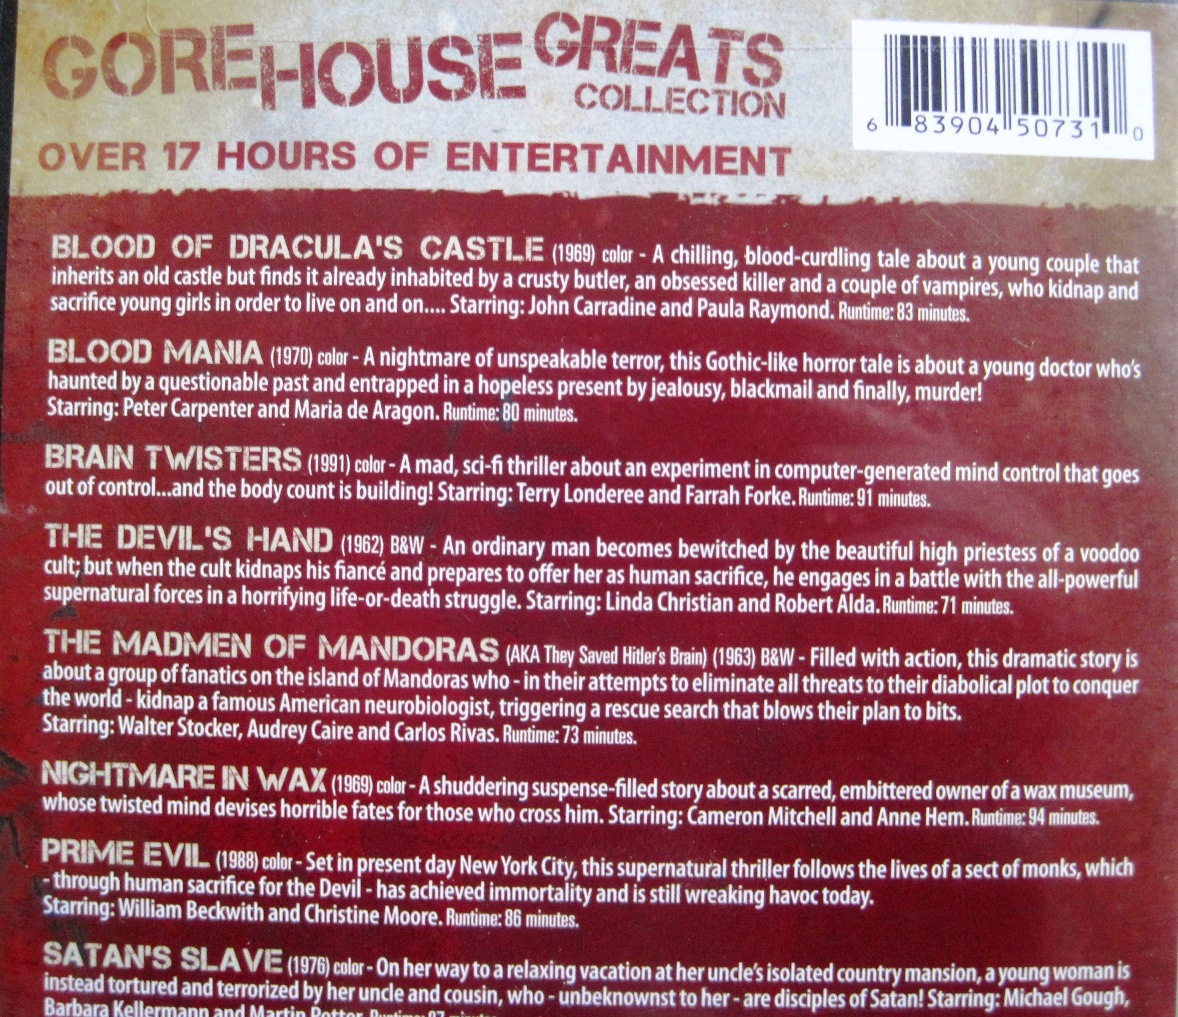 12 Gore House Greats DVD back cover